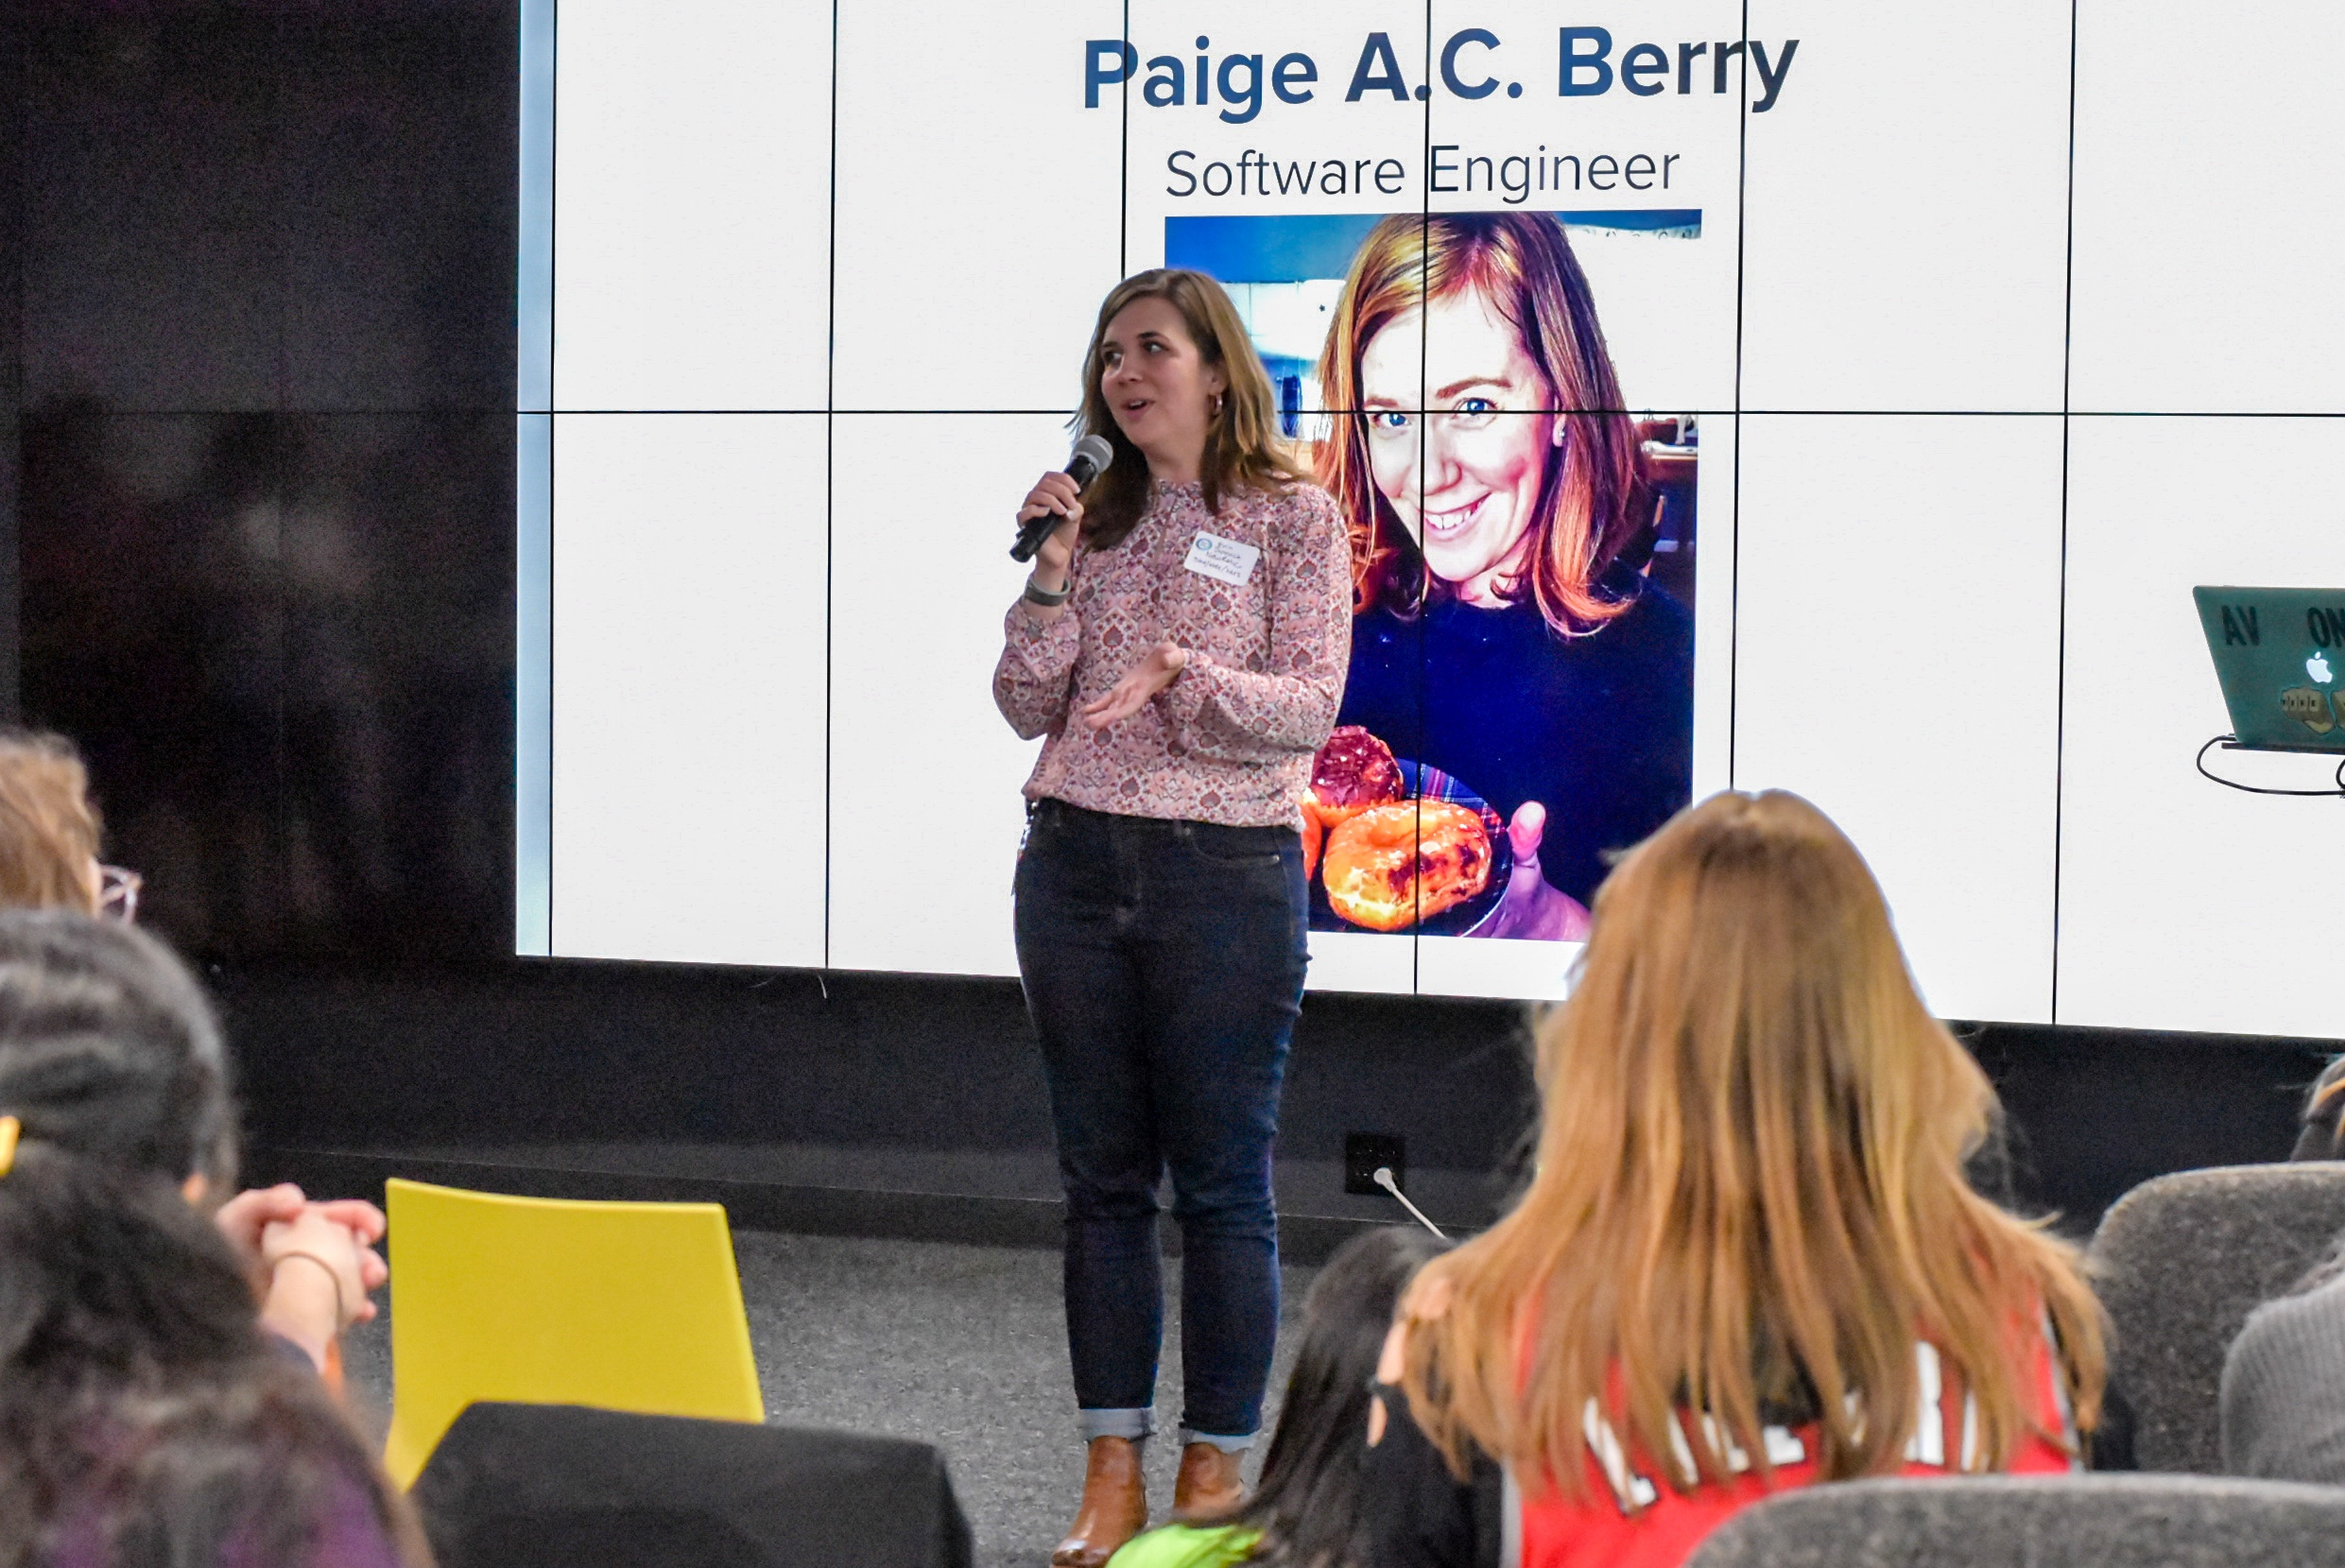 PDXWIT April Happy Hour @ New Relic, 4/16/19, Paige A.C. Berry - Software Engineer at New Relic - speaks